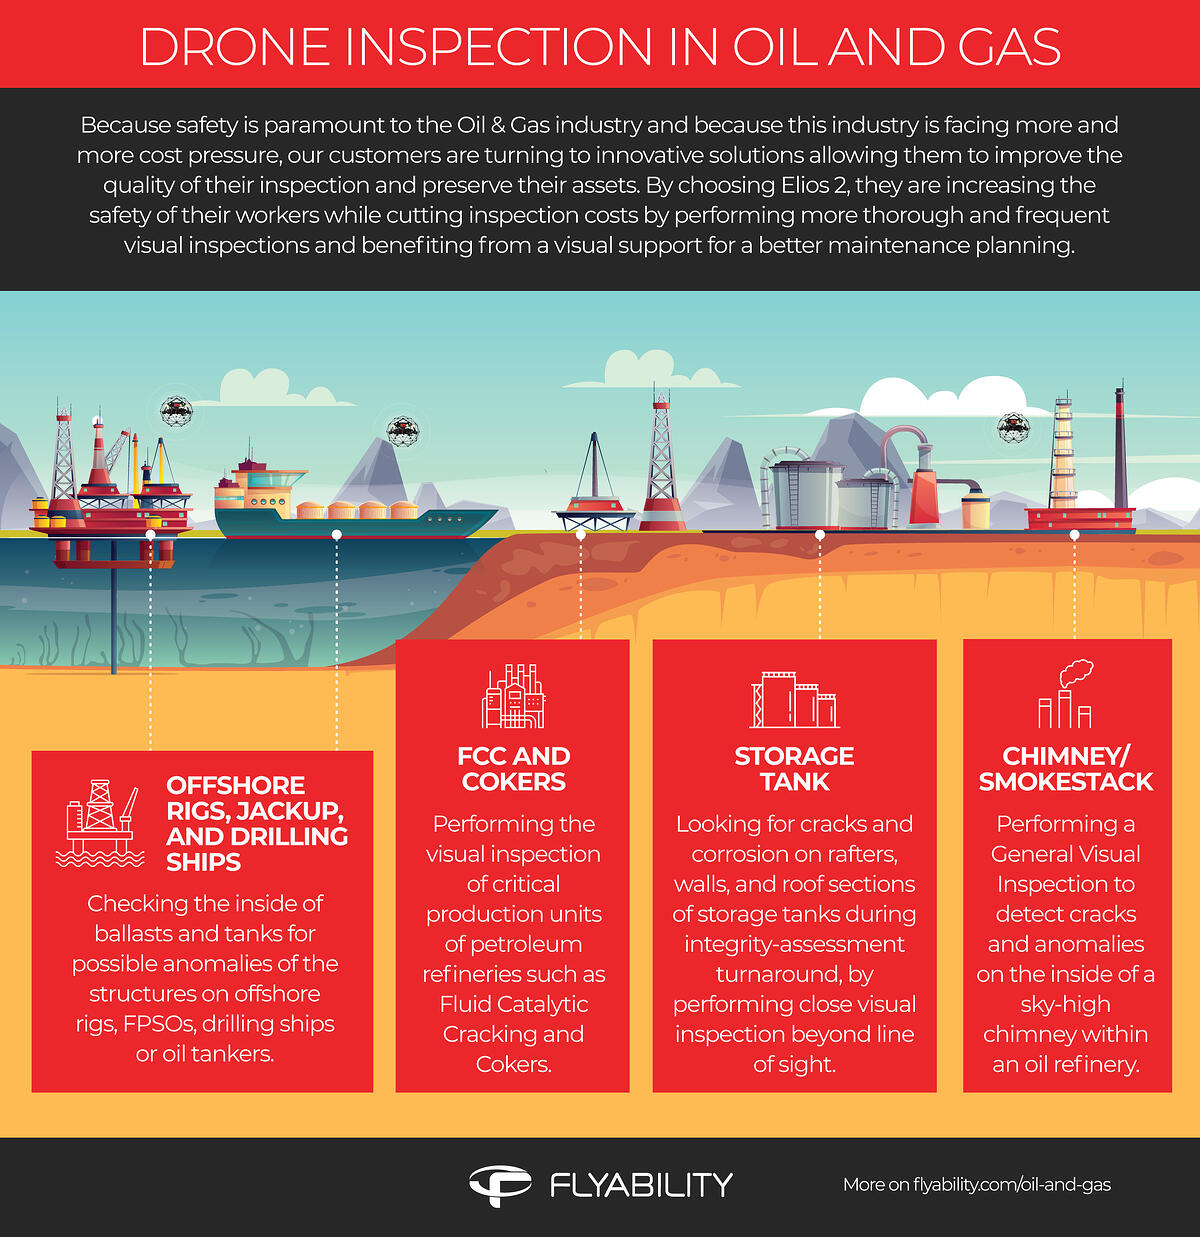 Oil and Gas_drone inspections infographic